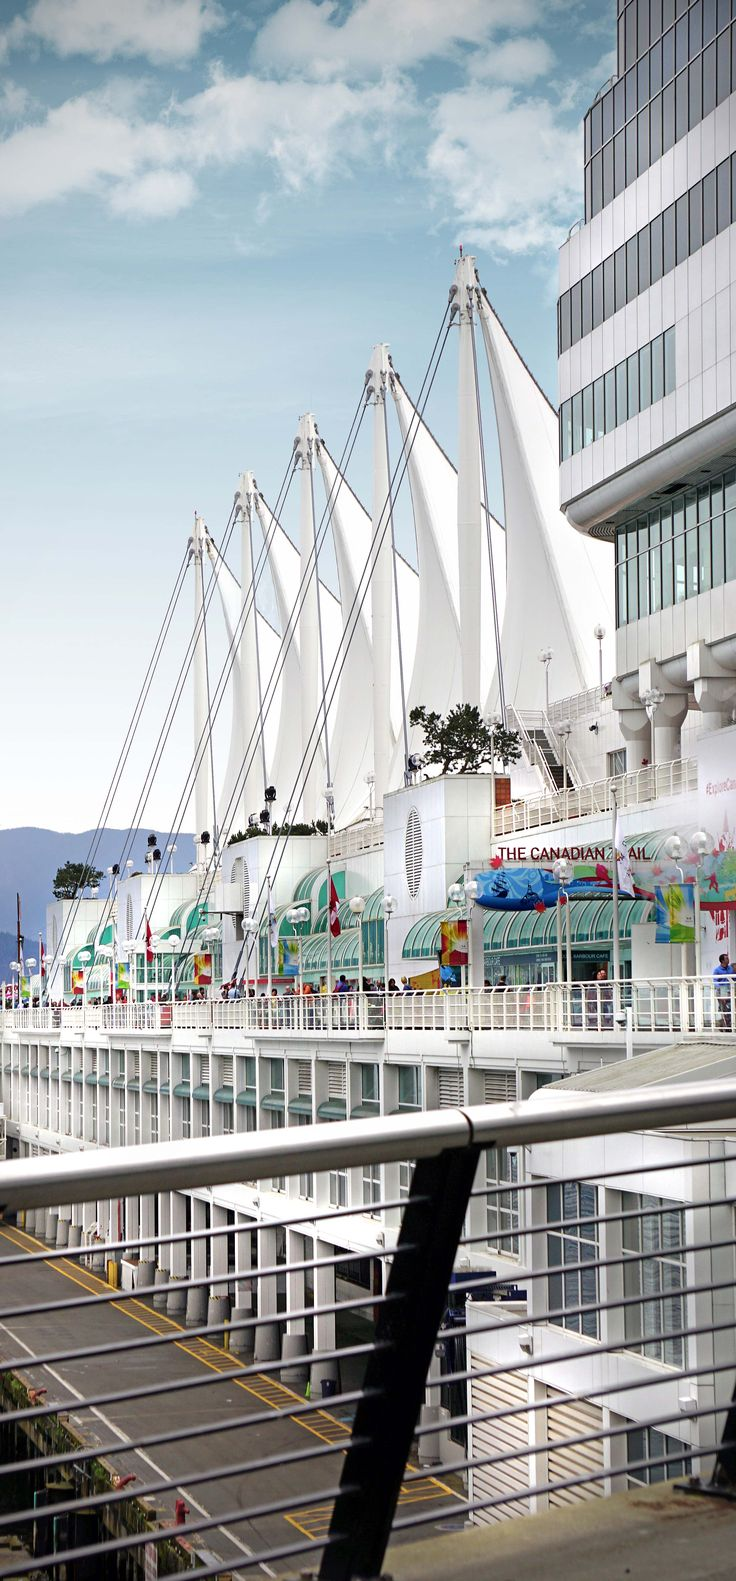 Canada Place - Located in the heart of downtown Vancouver's waterfront, Canada Place is a multi-use, world-class facility owned and operated by the Vancouver Fraser Port Authority.